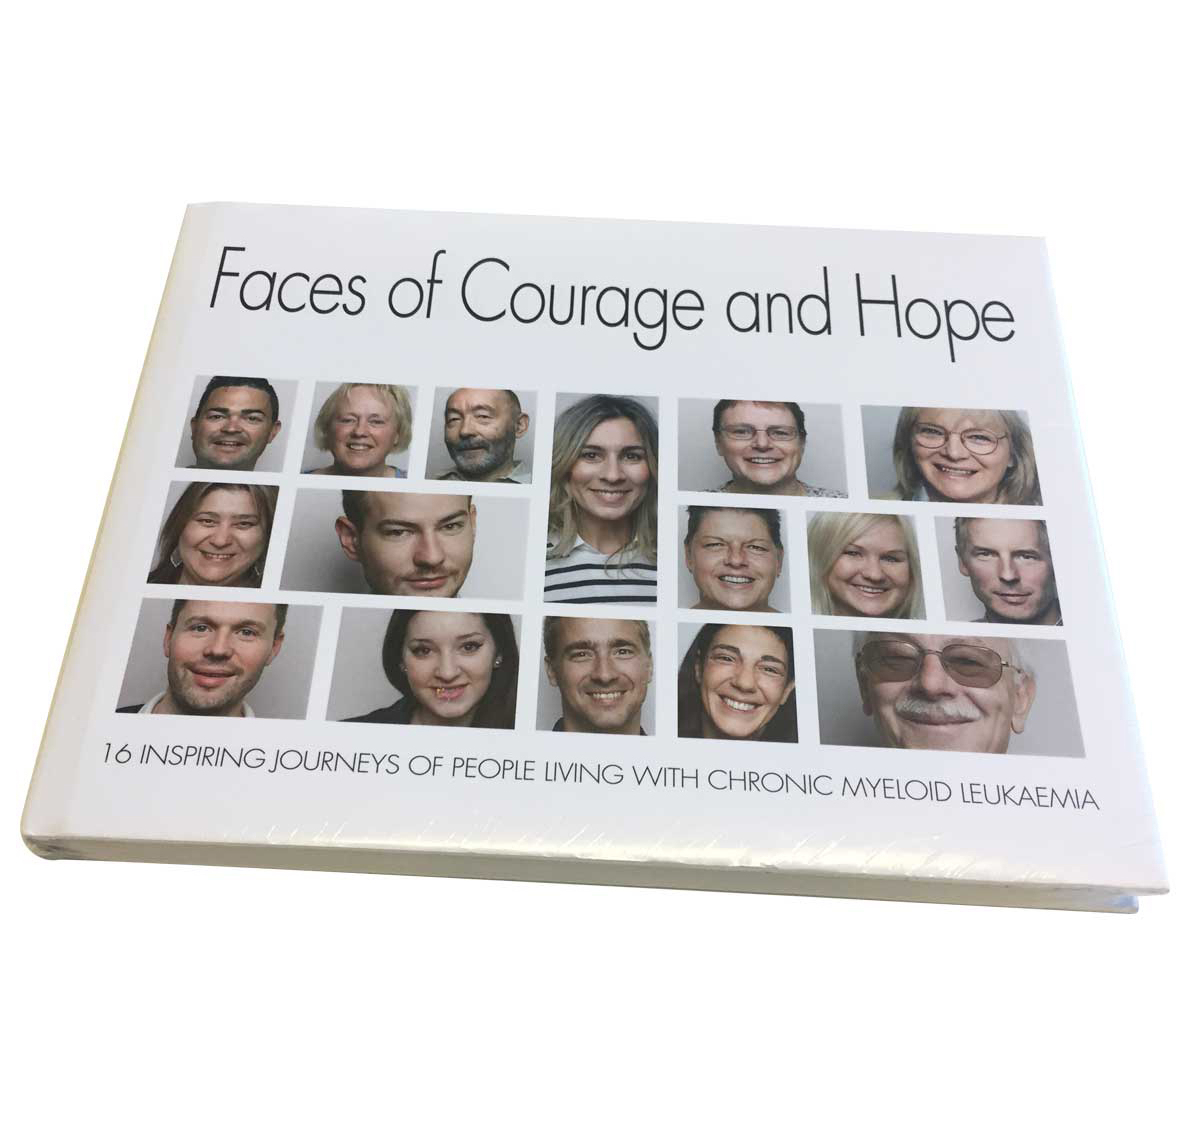 Faces of Courage and Hope